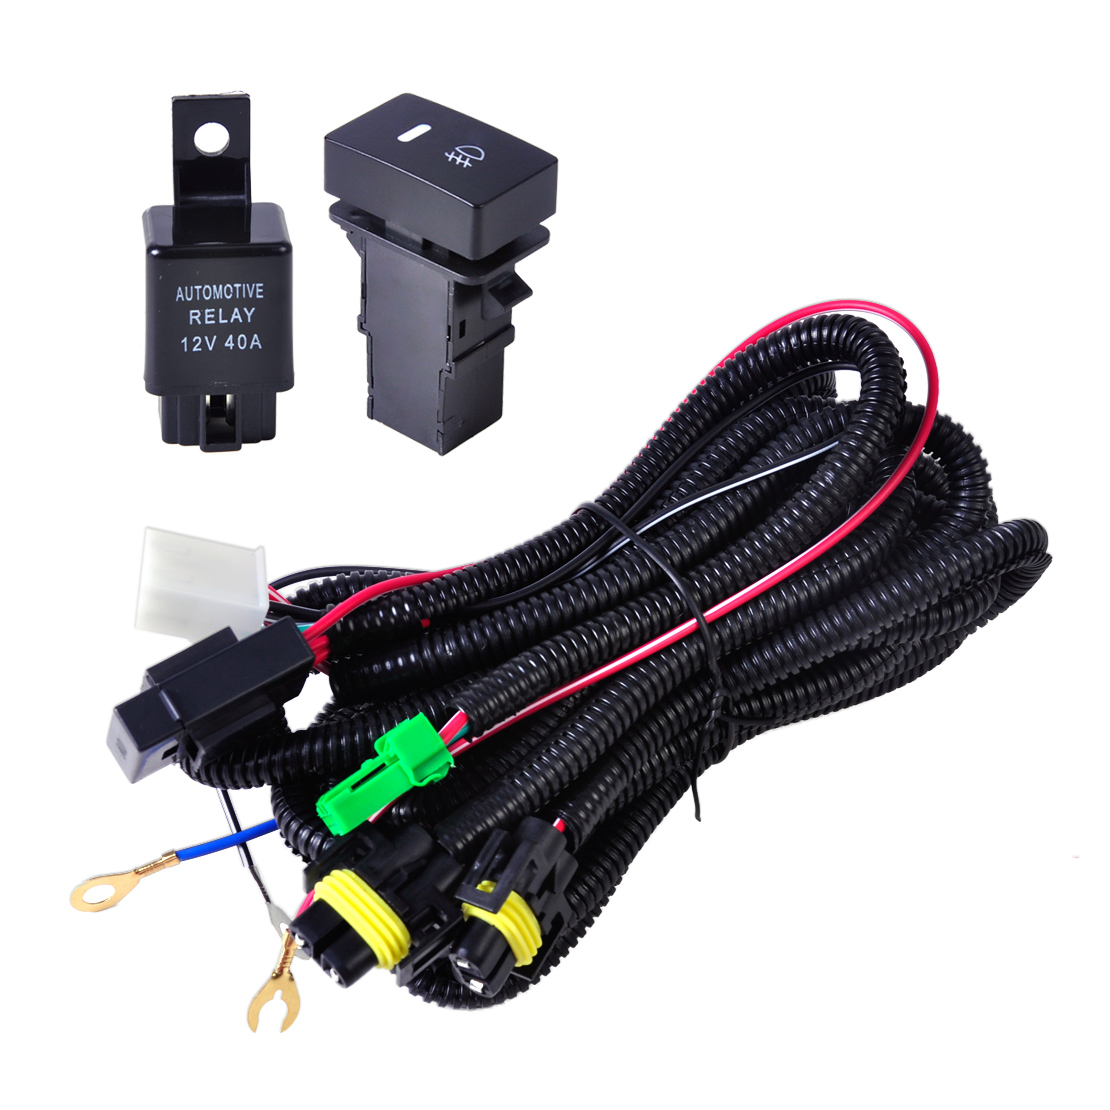 New Wiring Harness Socket Switch For H11 Fog Light Lamp Ford Focus Kits Photo Show